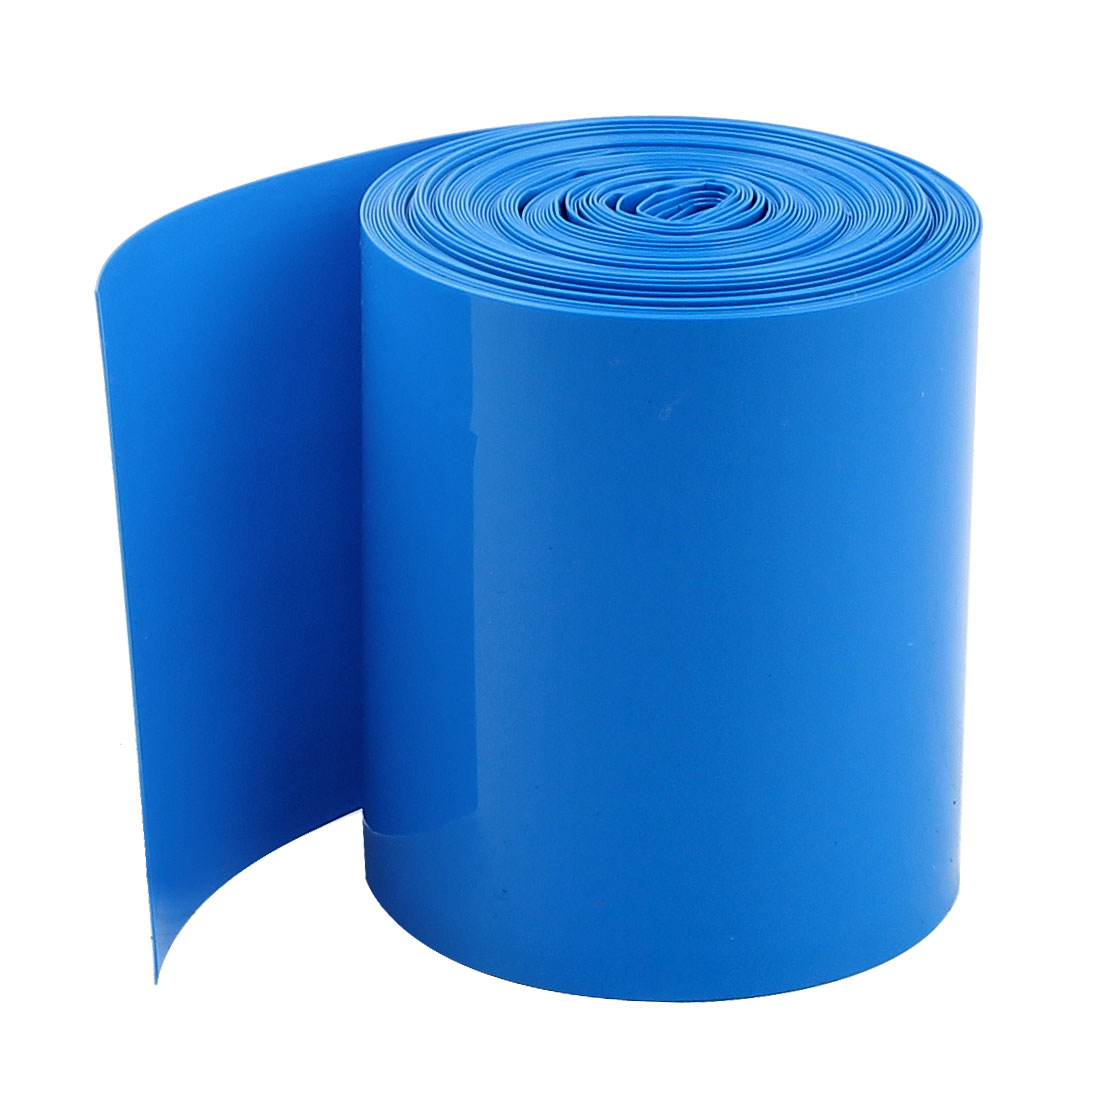 Unique Bargains 5Meters 50mm Width PVC Heat Shrink Wrap Tube Blue for 2 x 18650 Battery